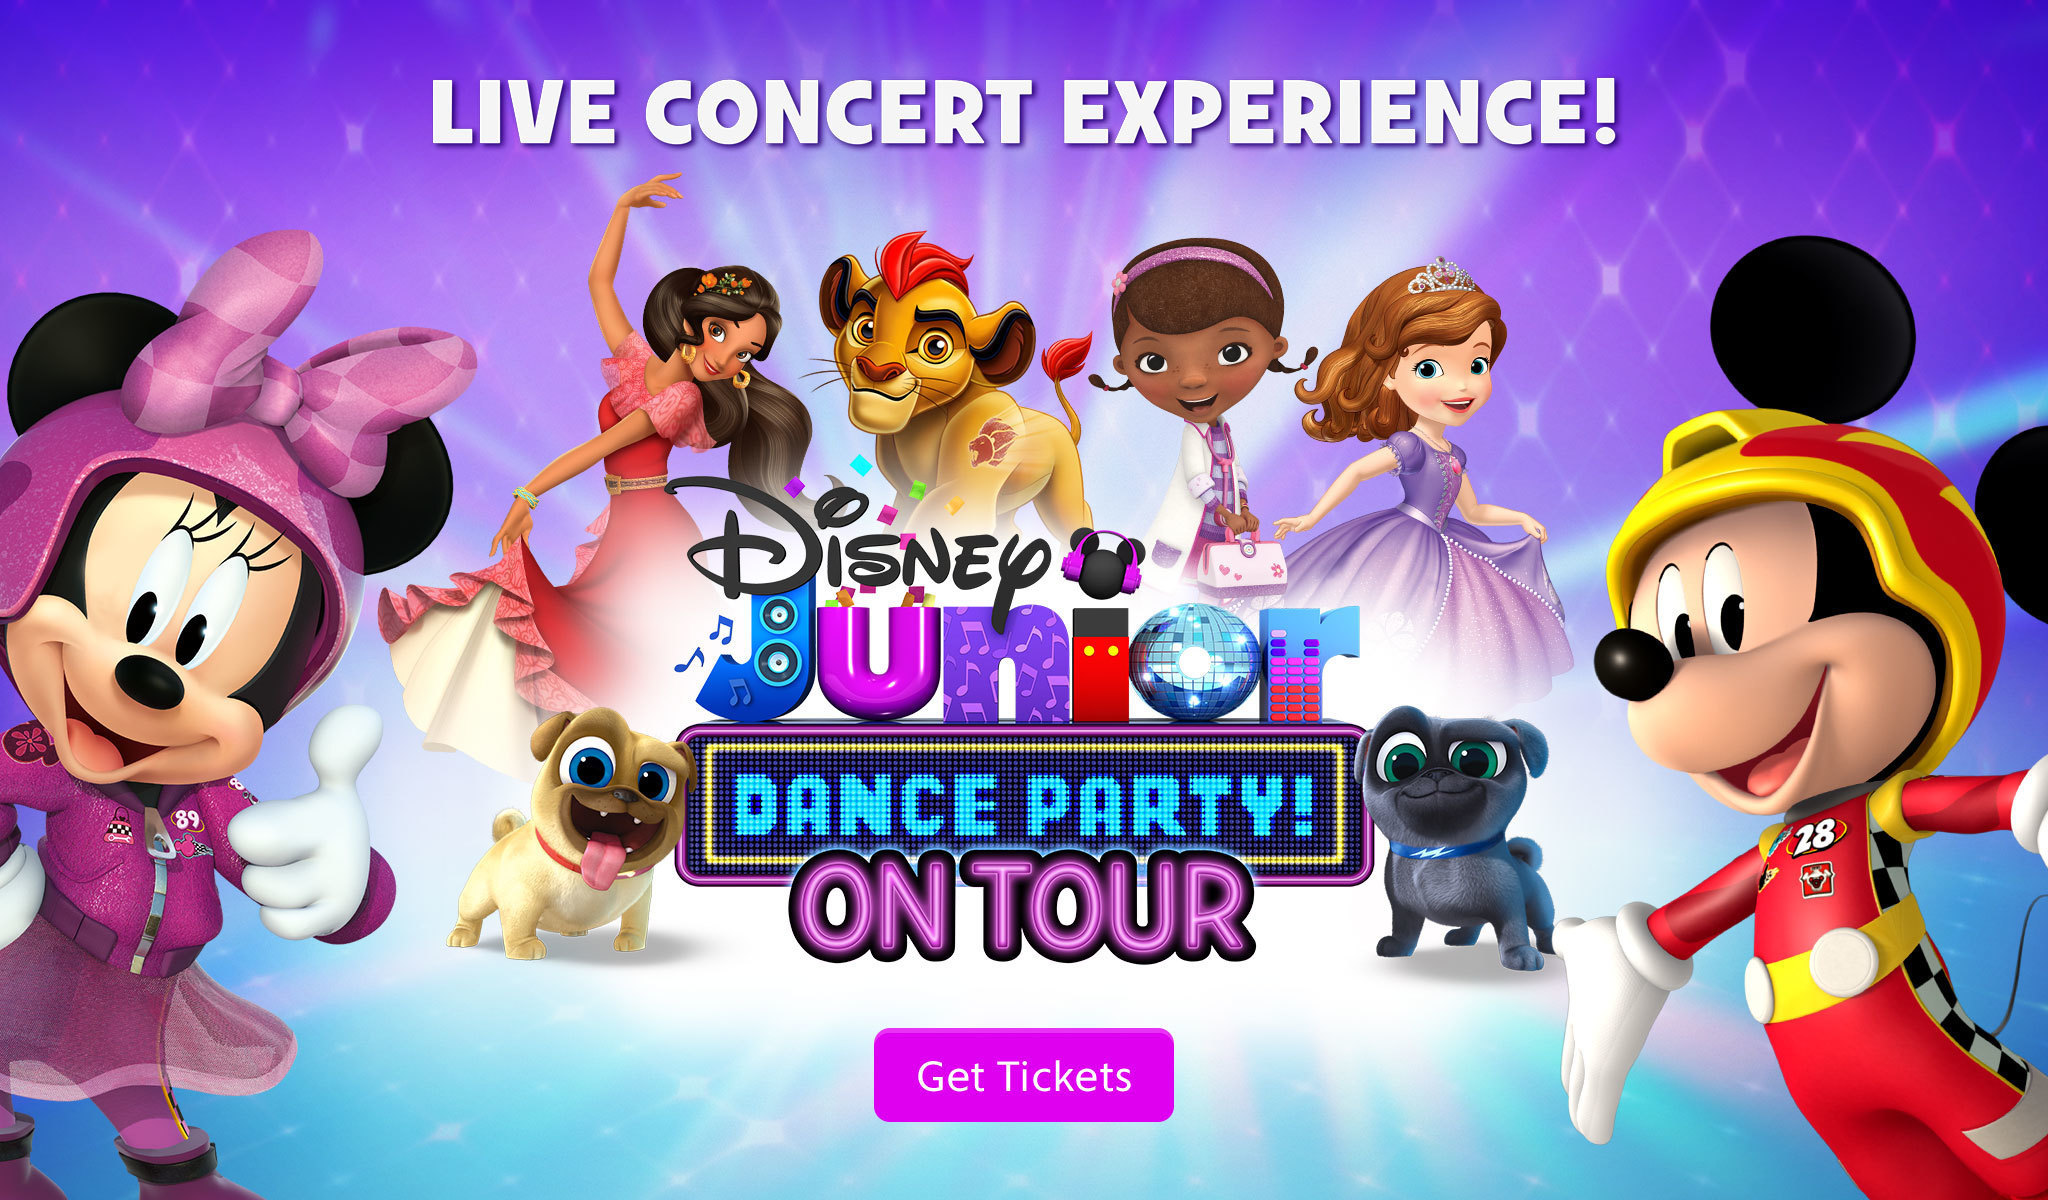 Get Tickets for Disney Junior's Dance Party on Tour! More Information coming soon.